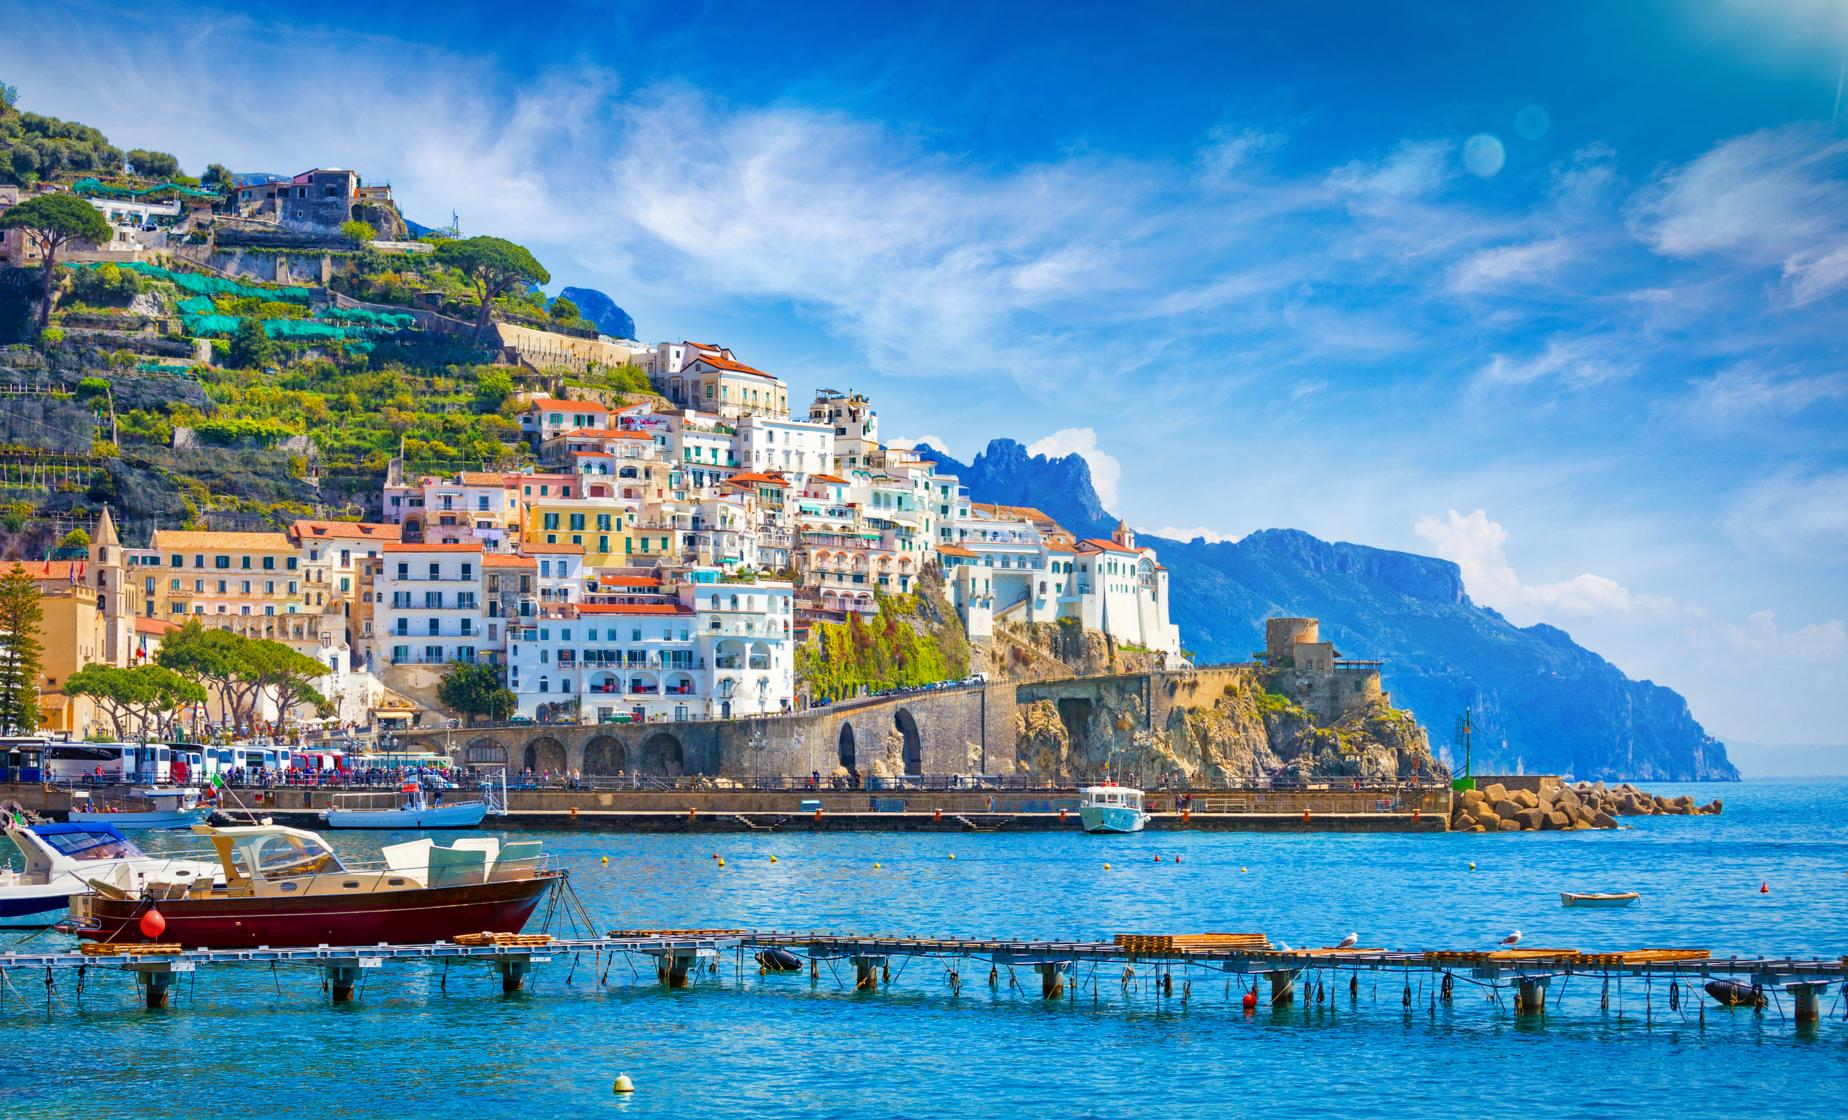 Sorrento, Positano and Amalfi by Land and Sea